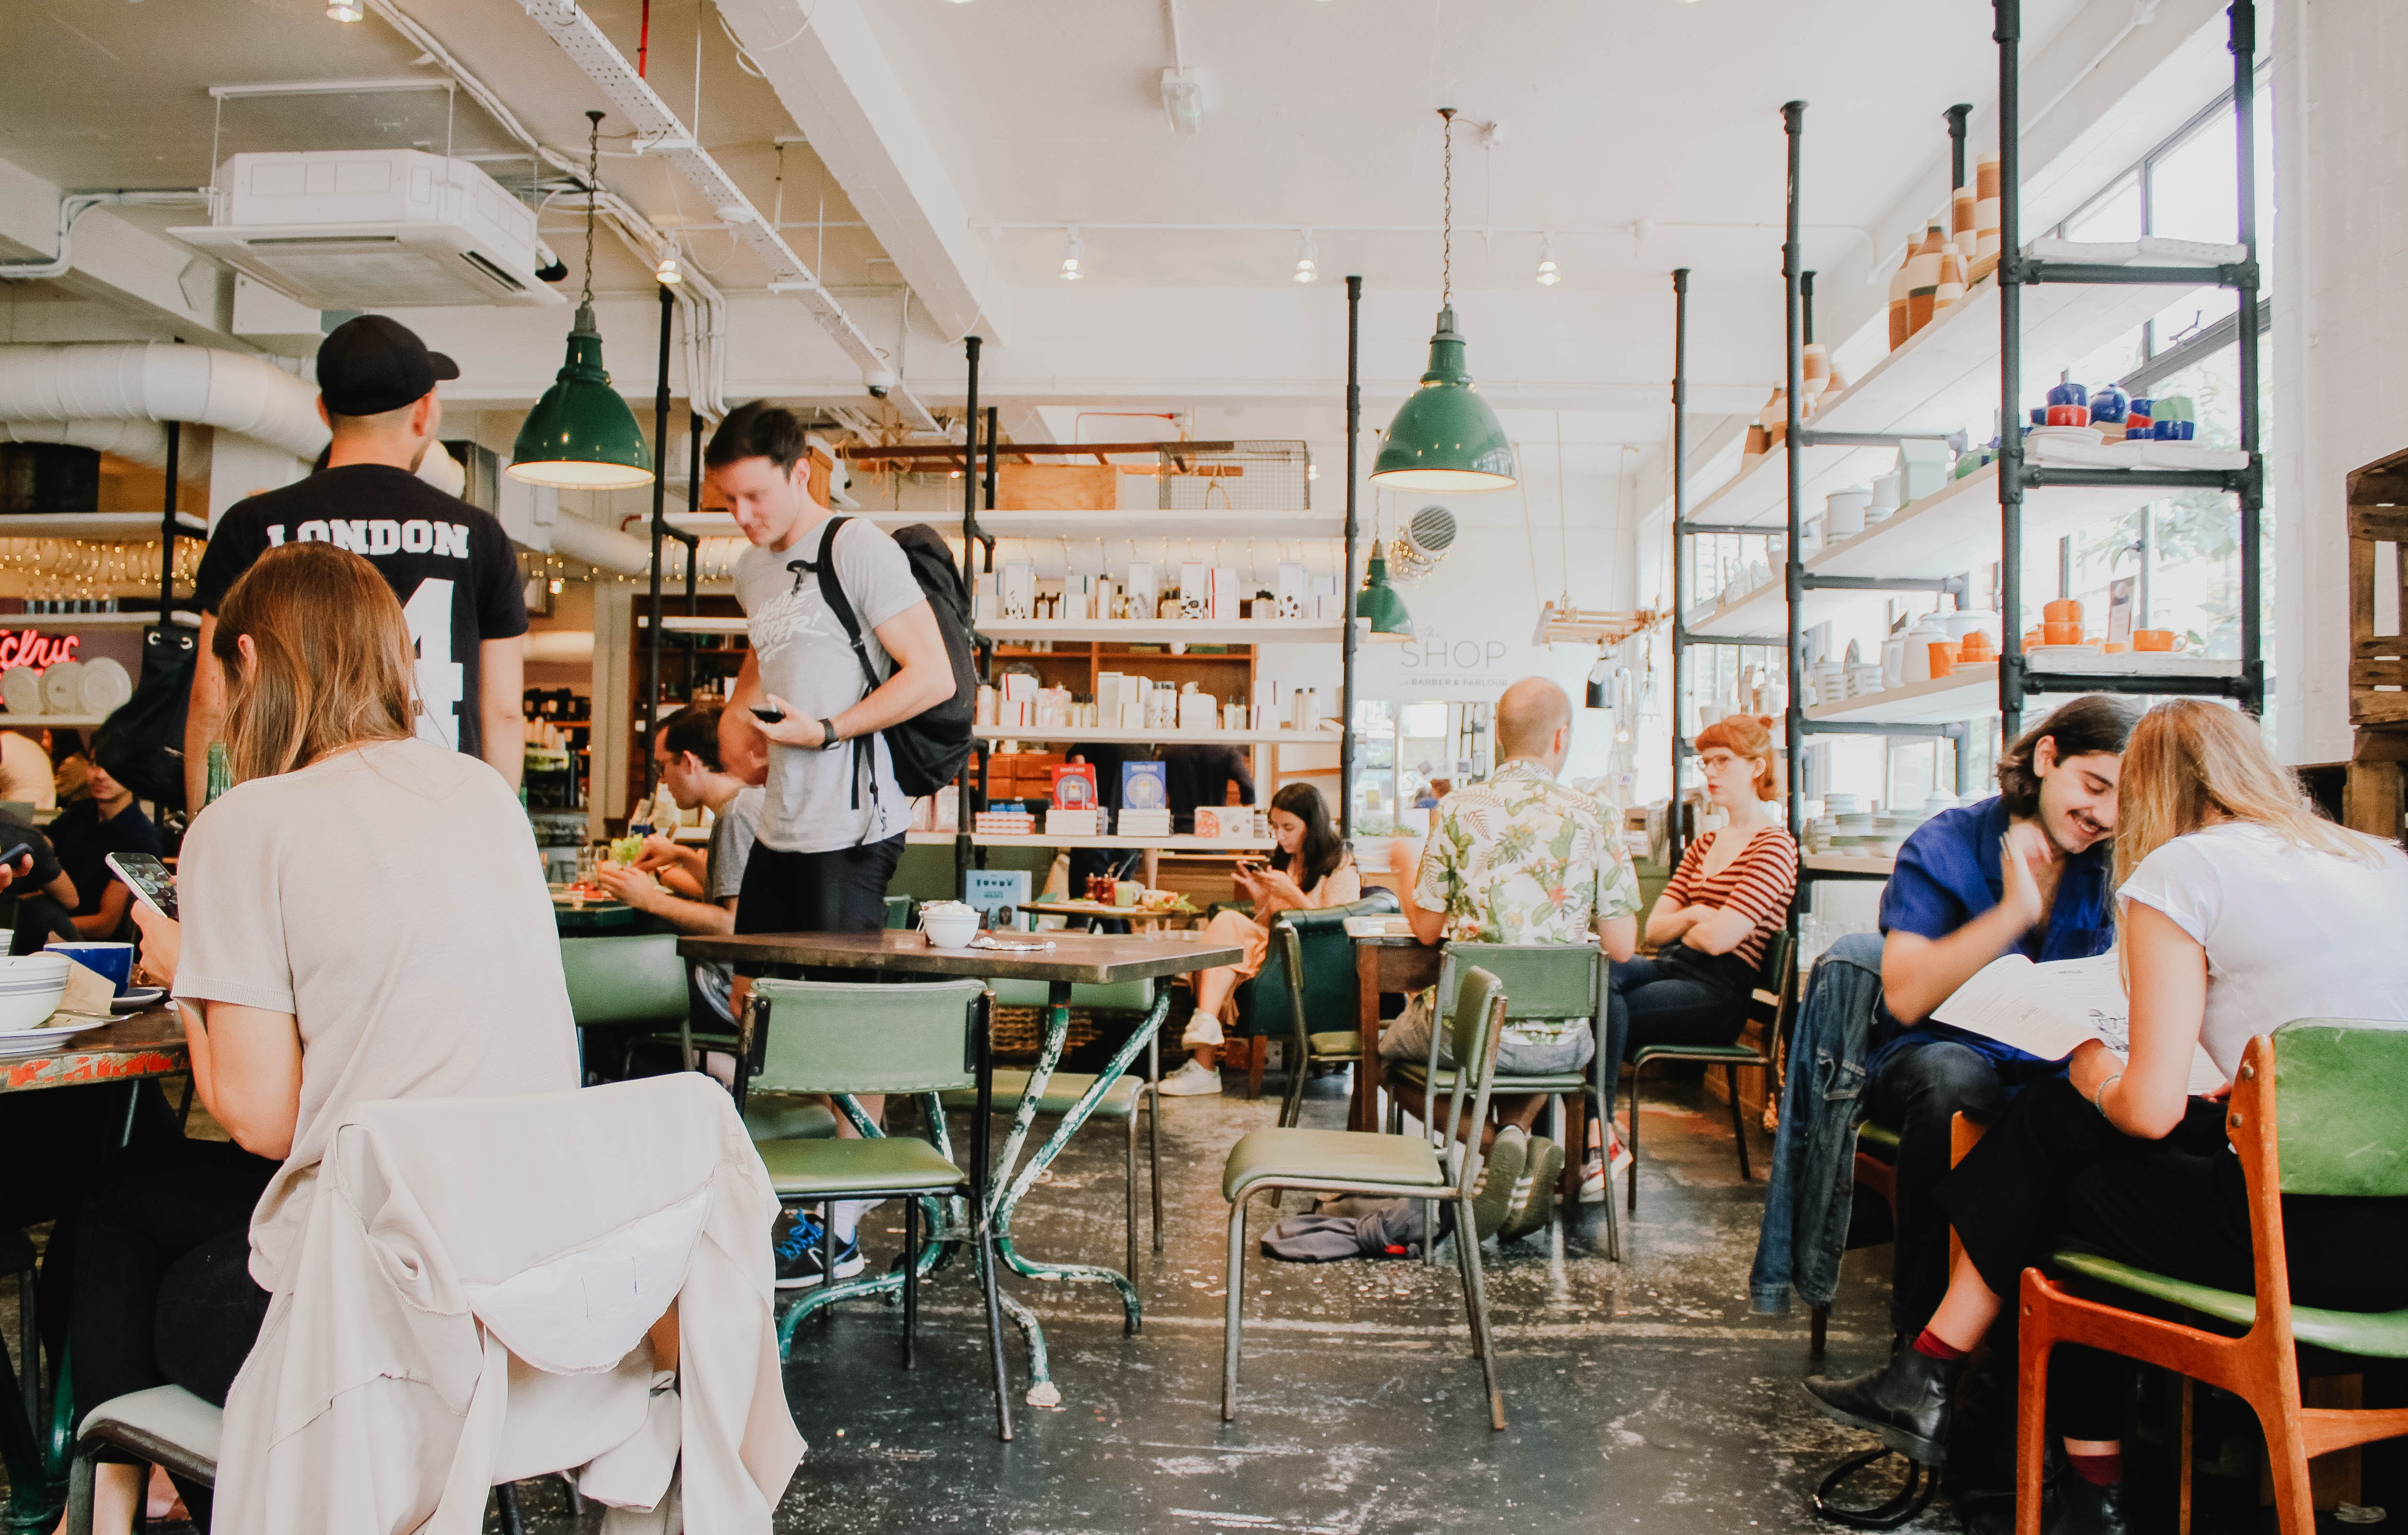 Solving Branding Problems In a crunch: The Makeshop Experience | Brand Strategy | Brand Consulting Firms NYC